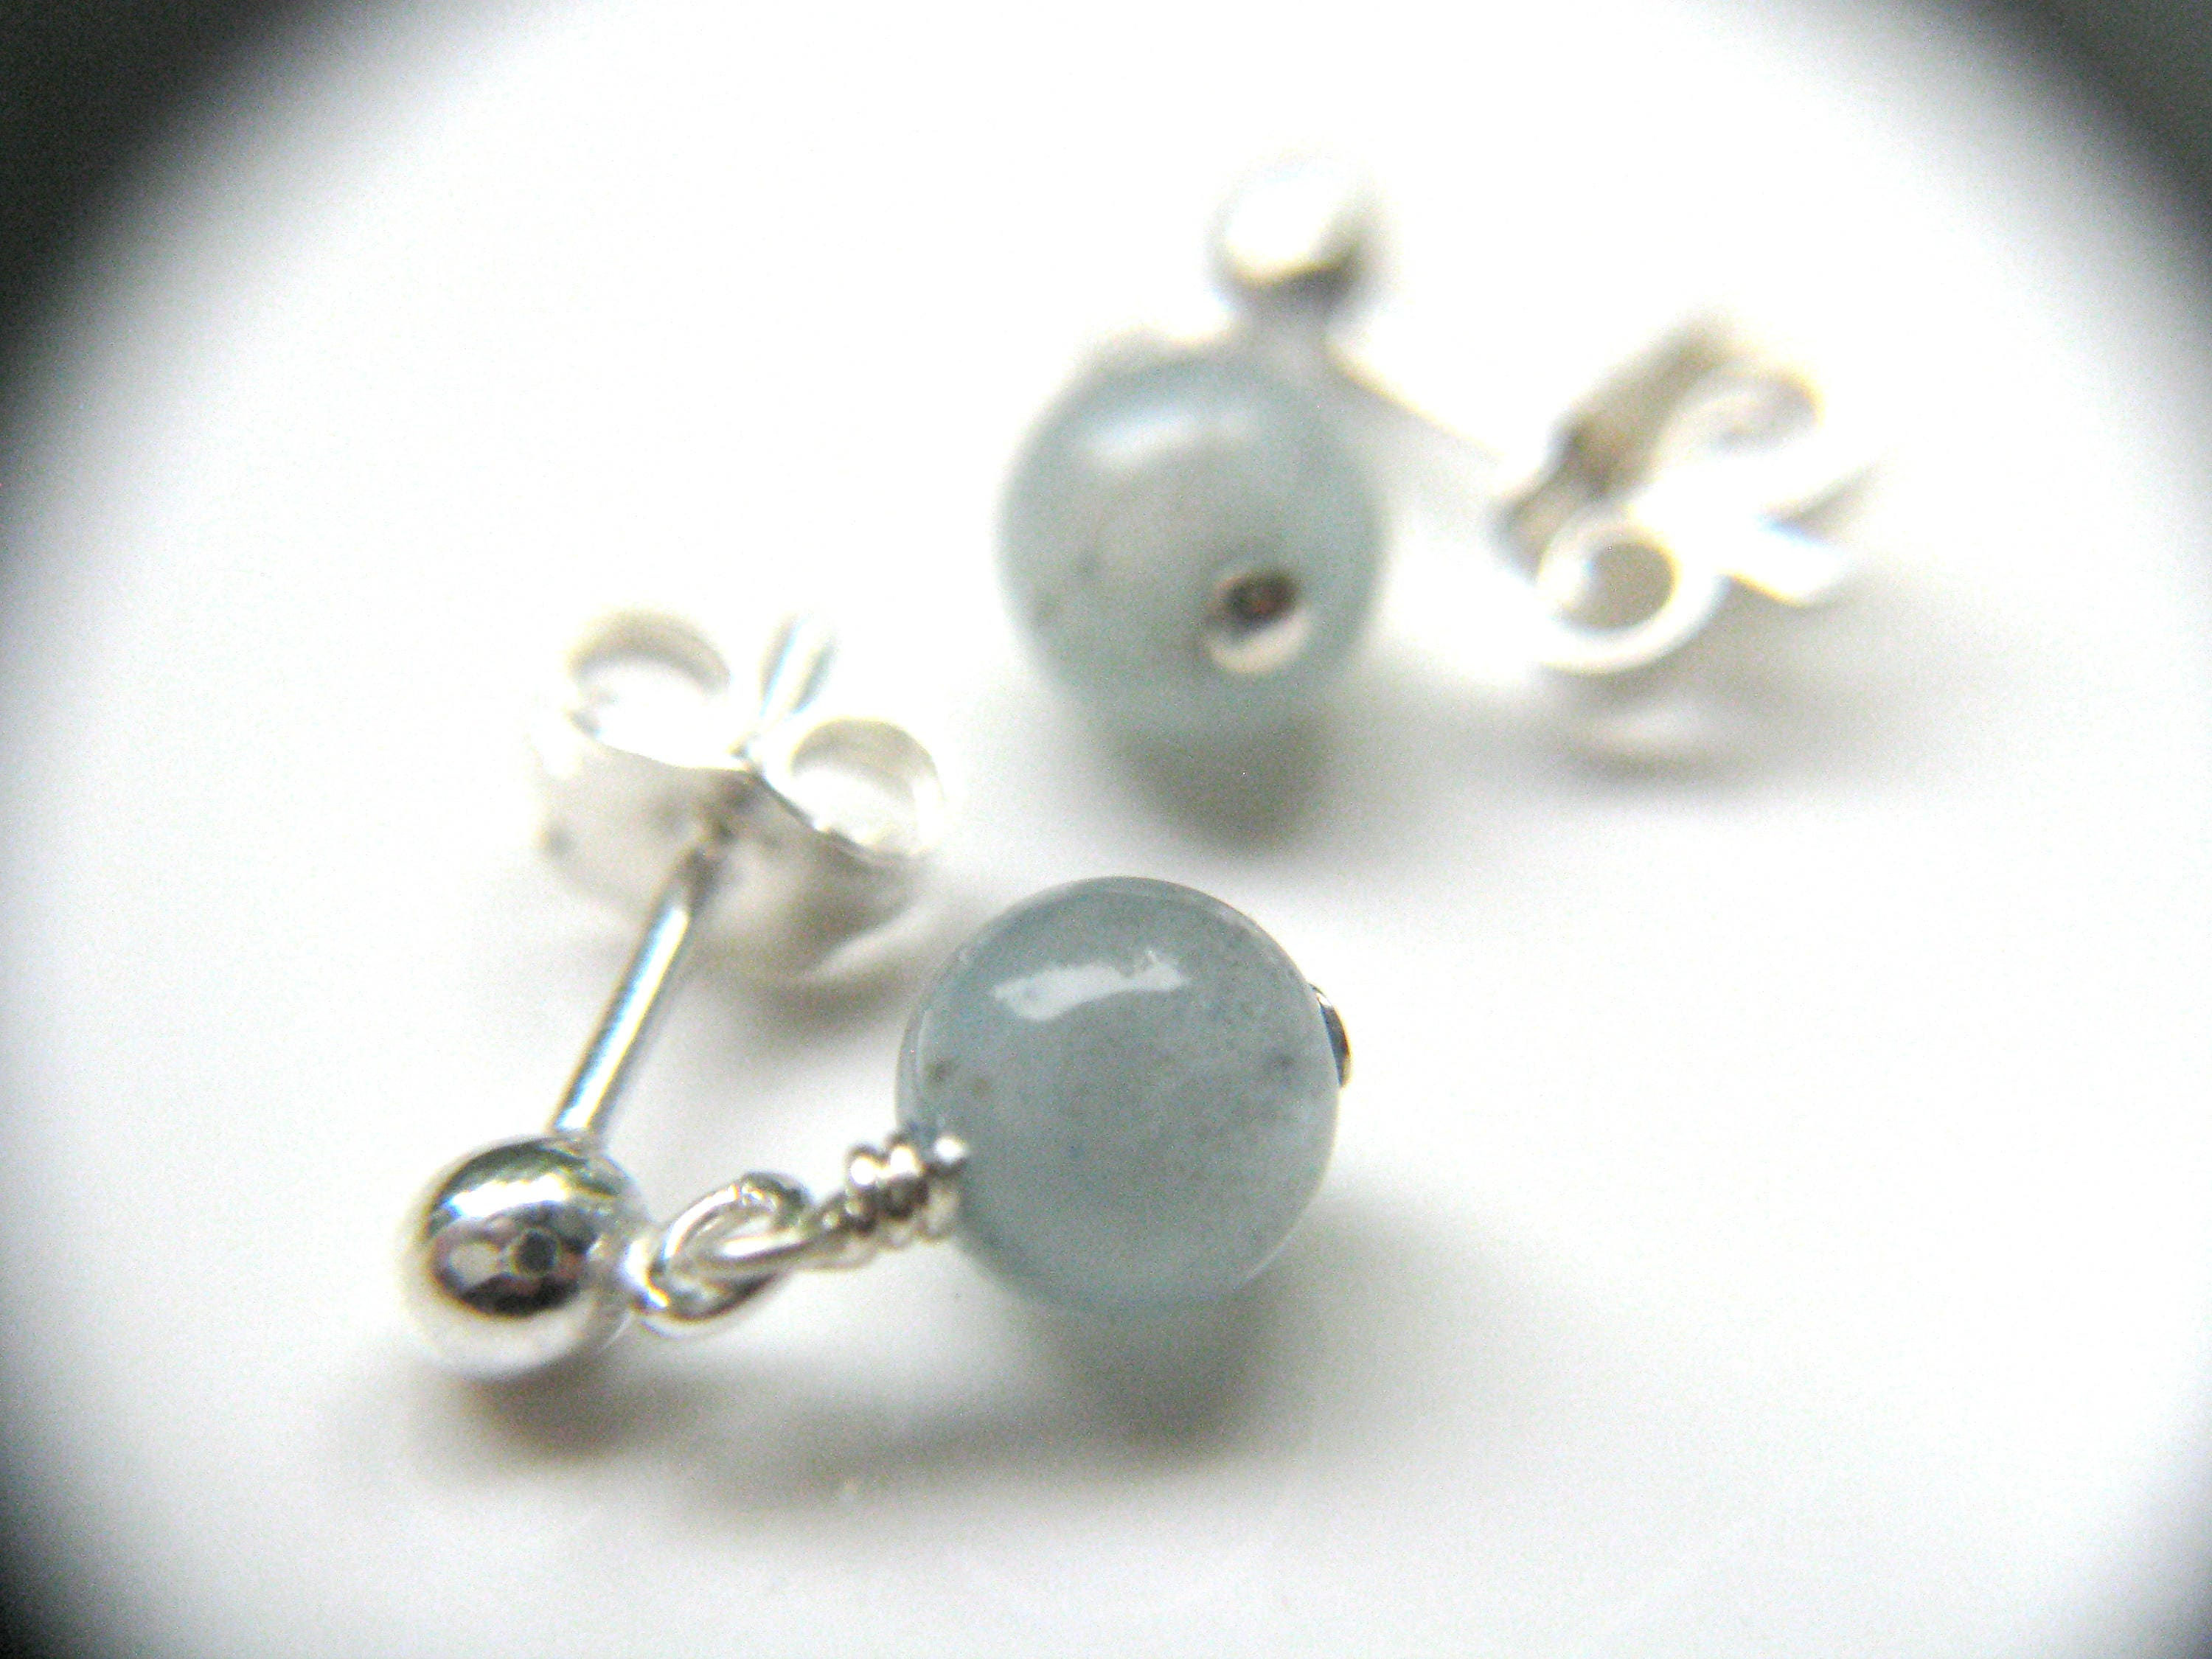 aquamarine loading cultured yoko moda large white earrings genuine diamond silver by pearl gold london